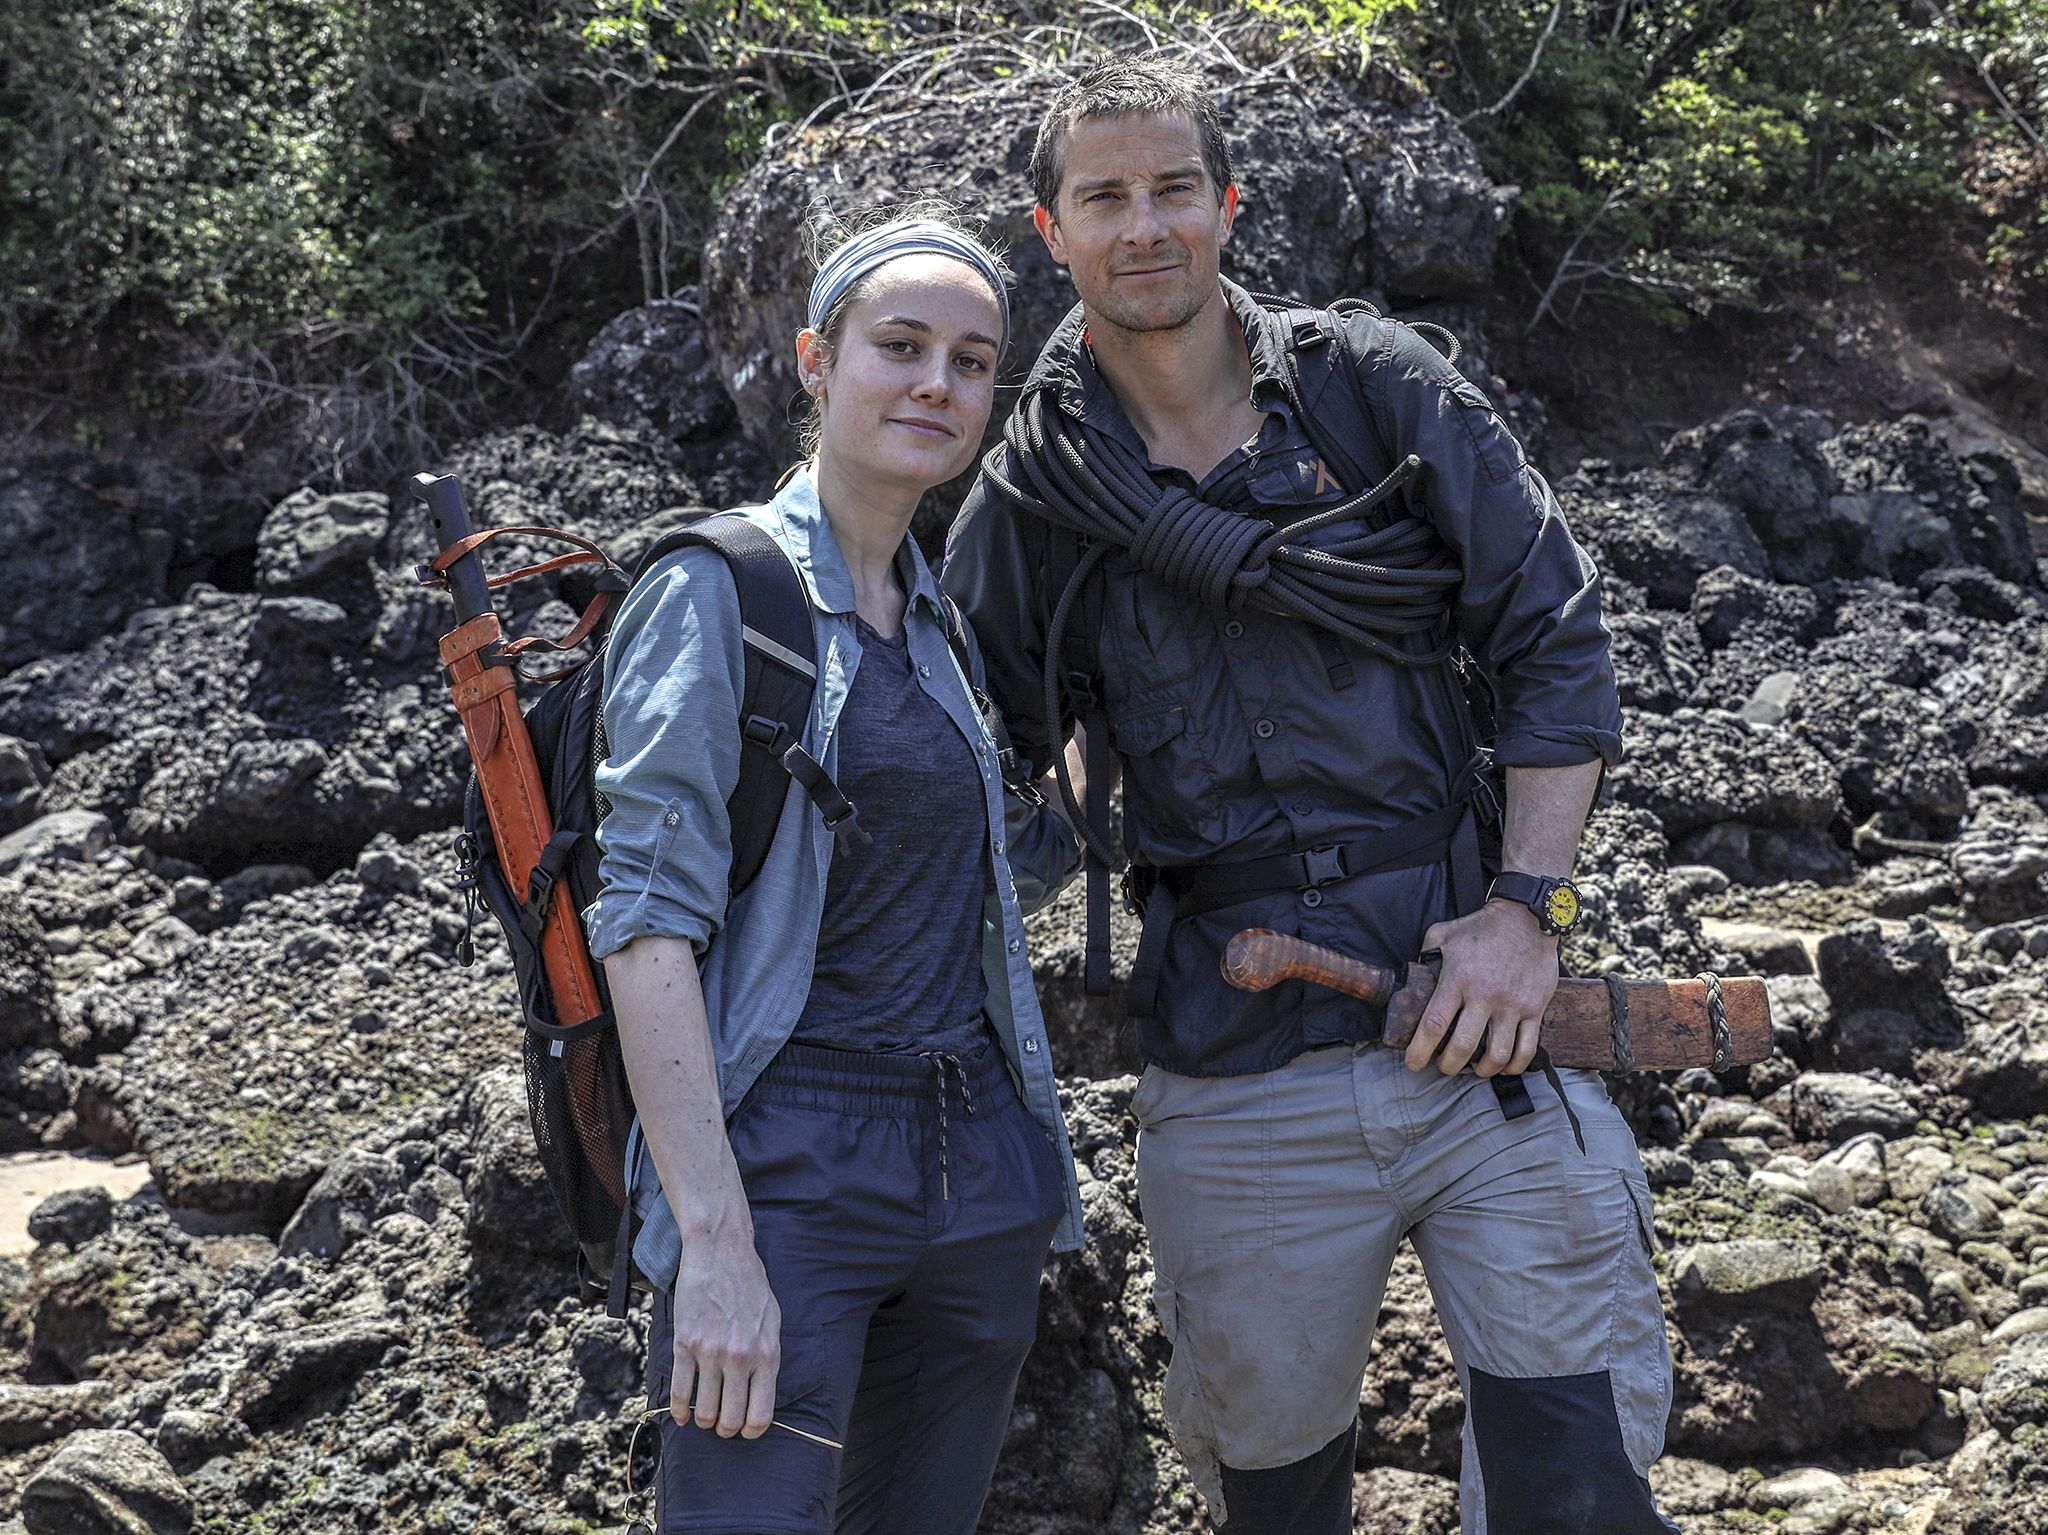 Panama: (L to R) Brie Larson and Bear Grylls on the shore of a remote Pearl Island in Panama.... [Photo of the day - نوامبر 2019]